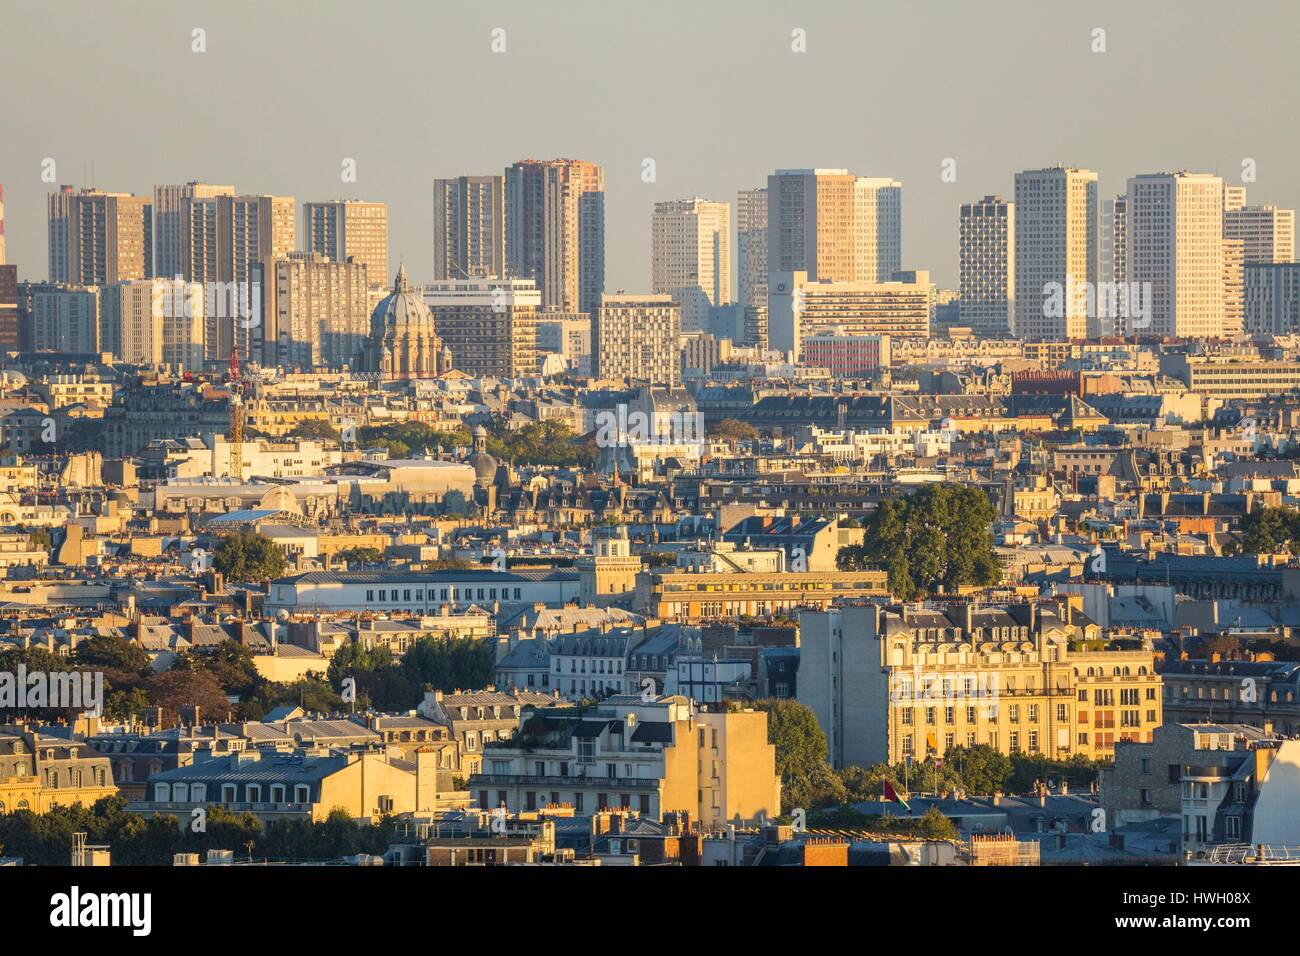 France, Paris, general view with the towers of the 13th arrondissements - Stock Image